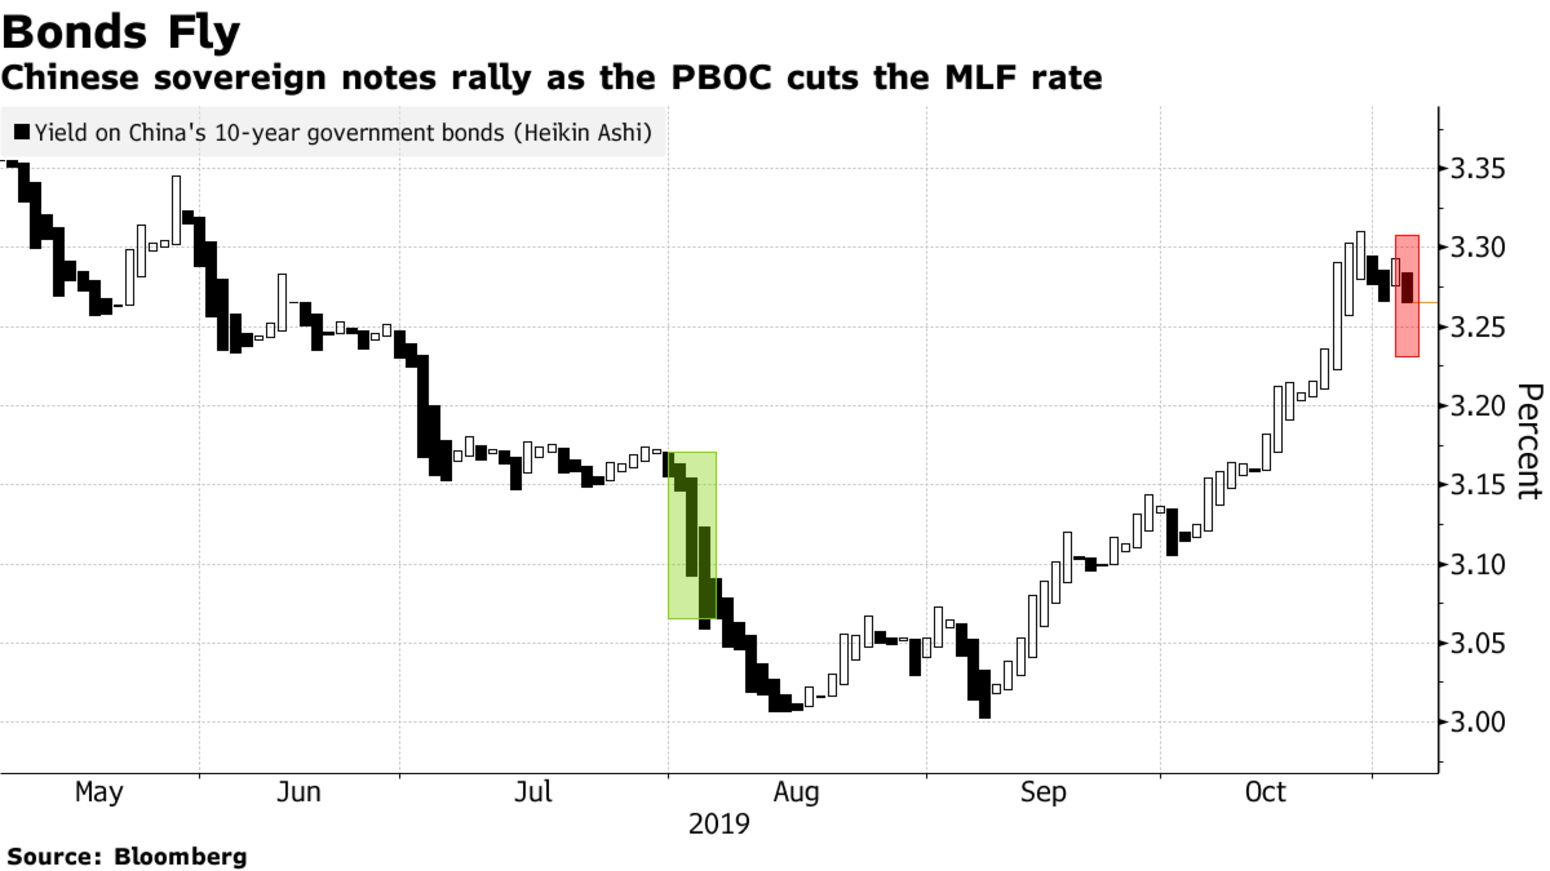 Chinese sovereign notes rally as the PBOC cuts the MLF rate